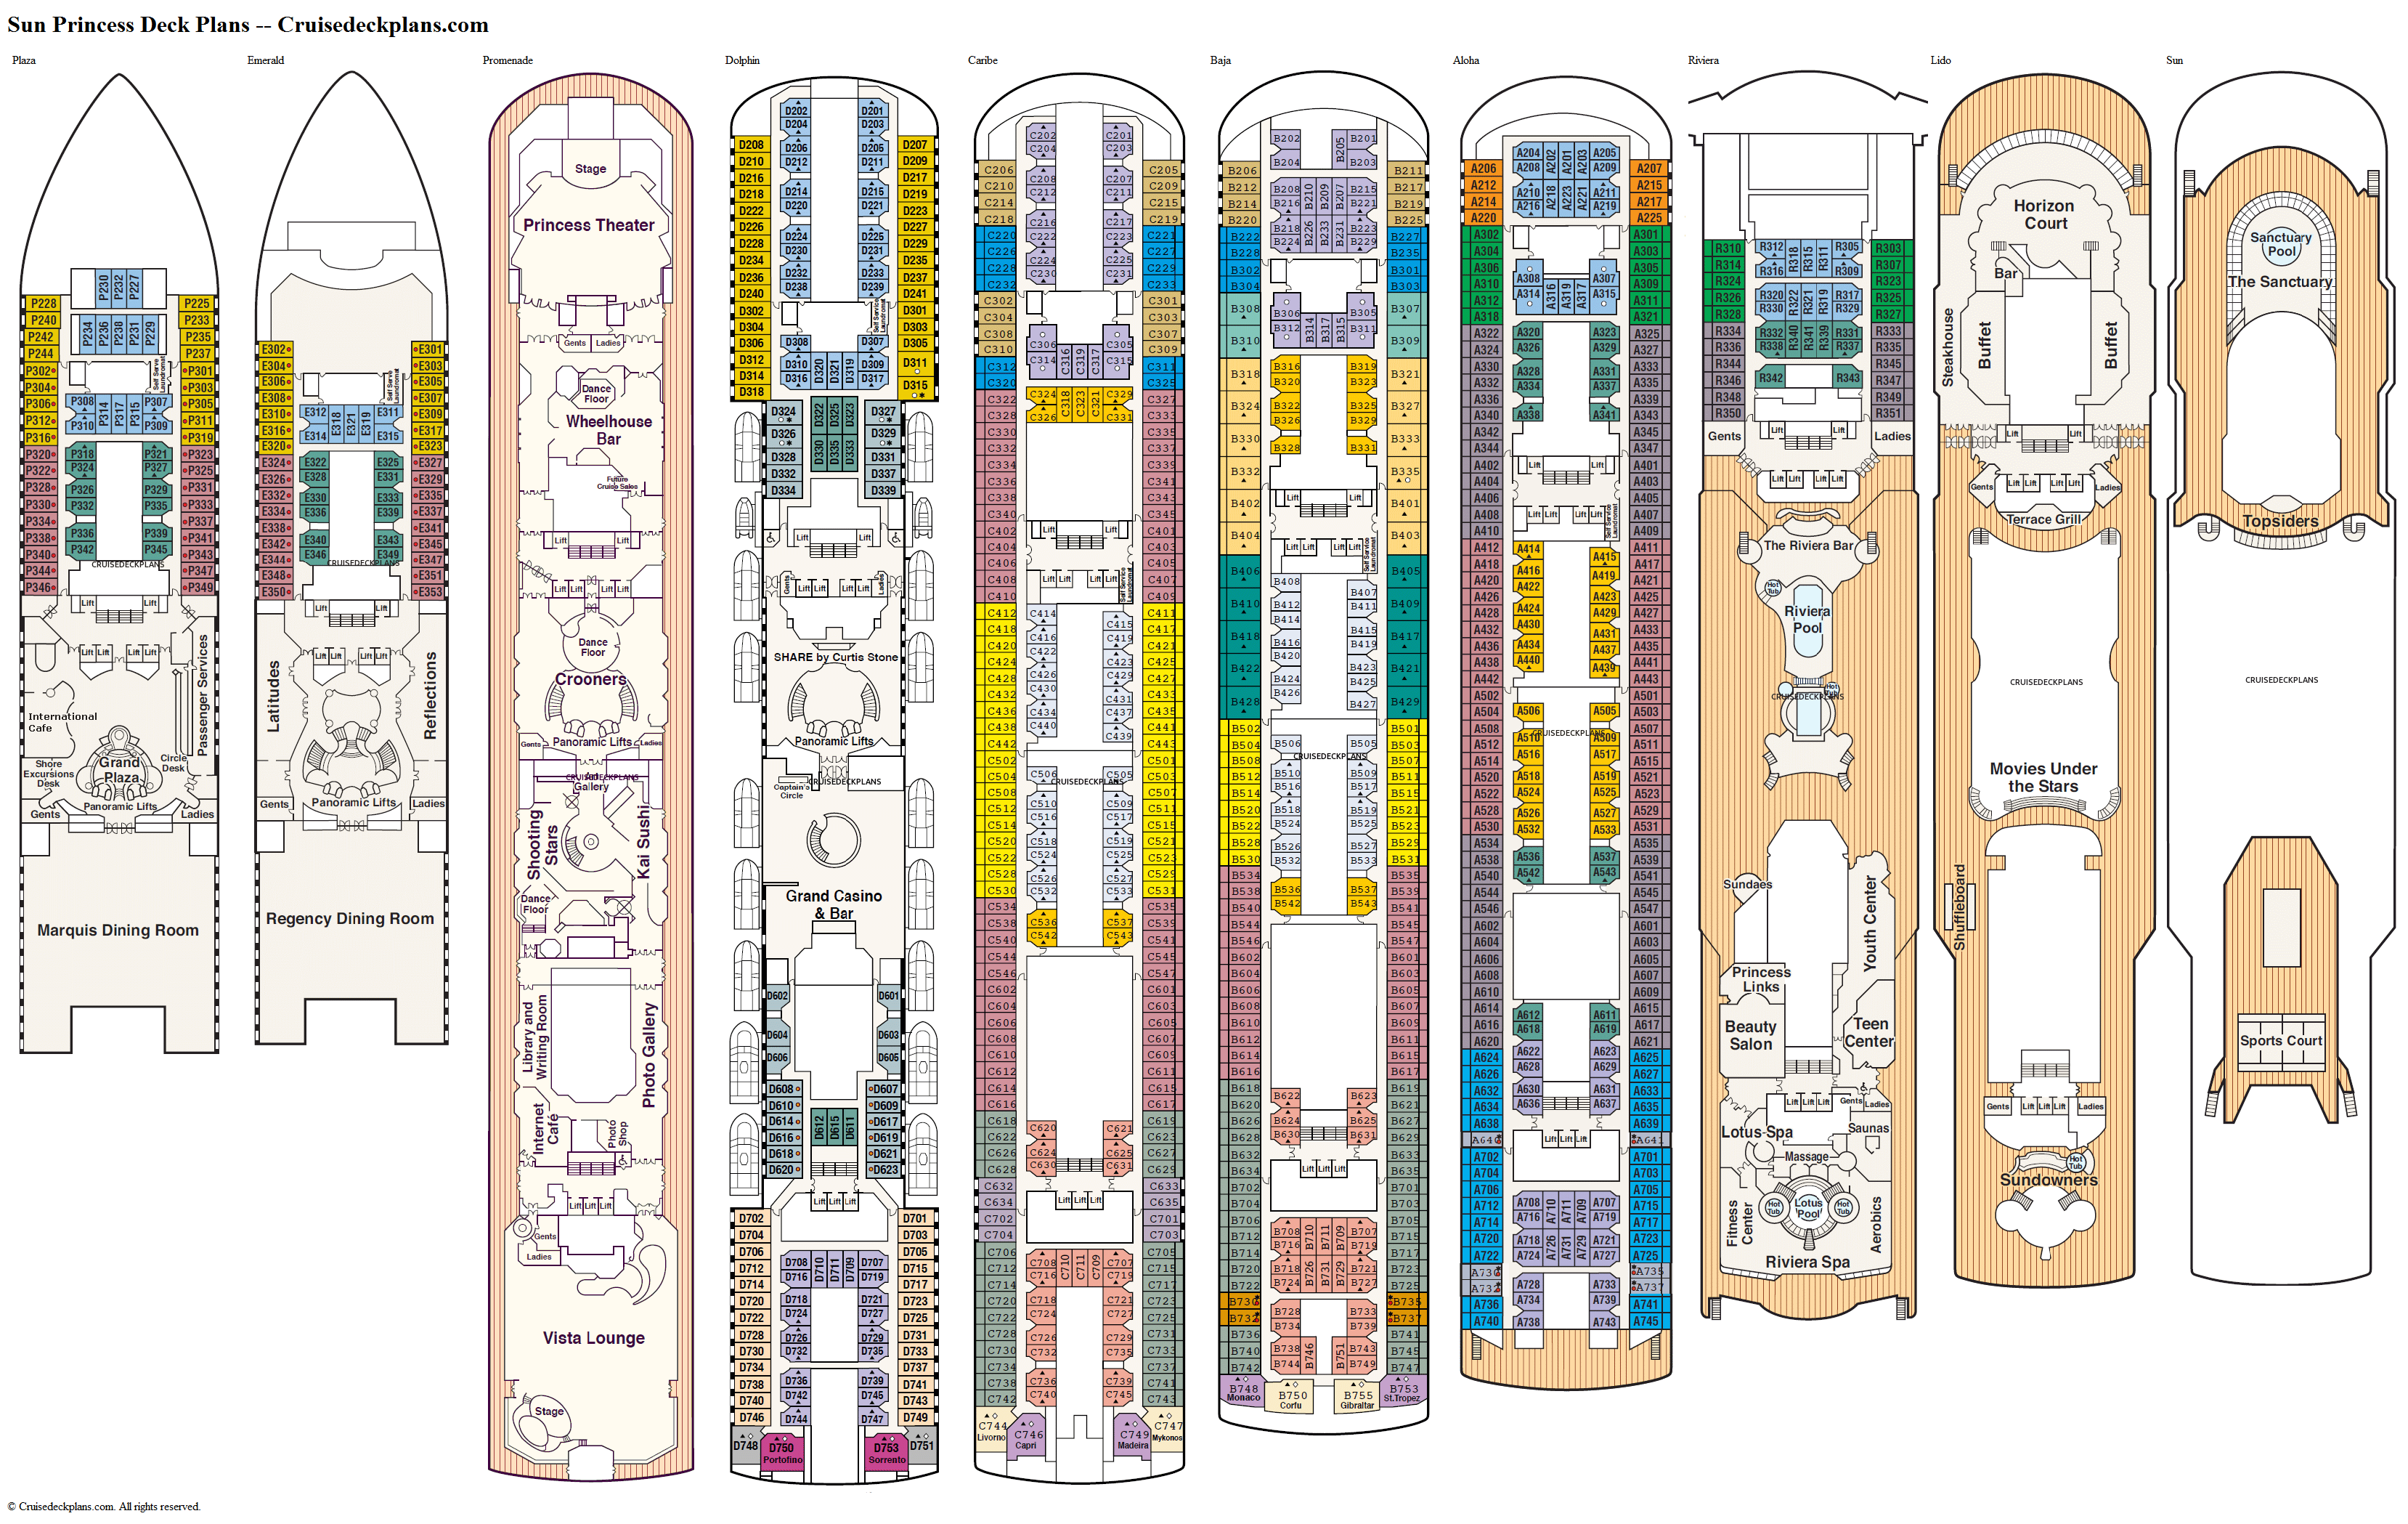 Sun Princess deck plans image